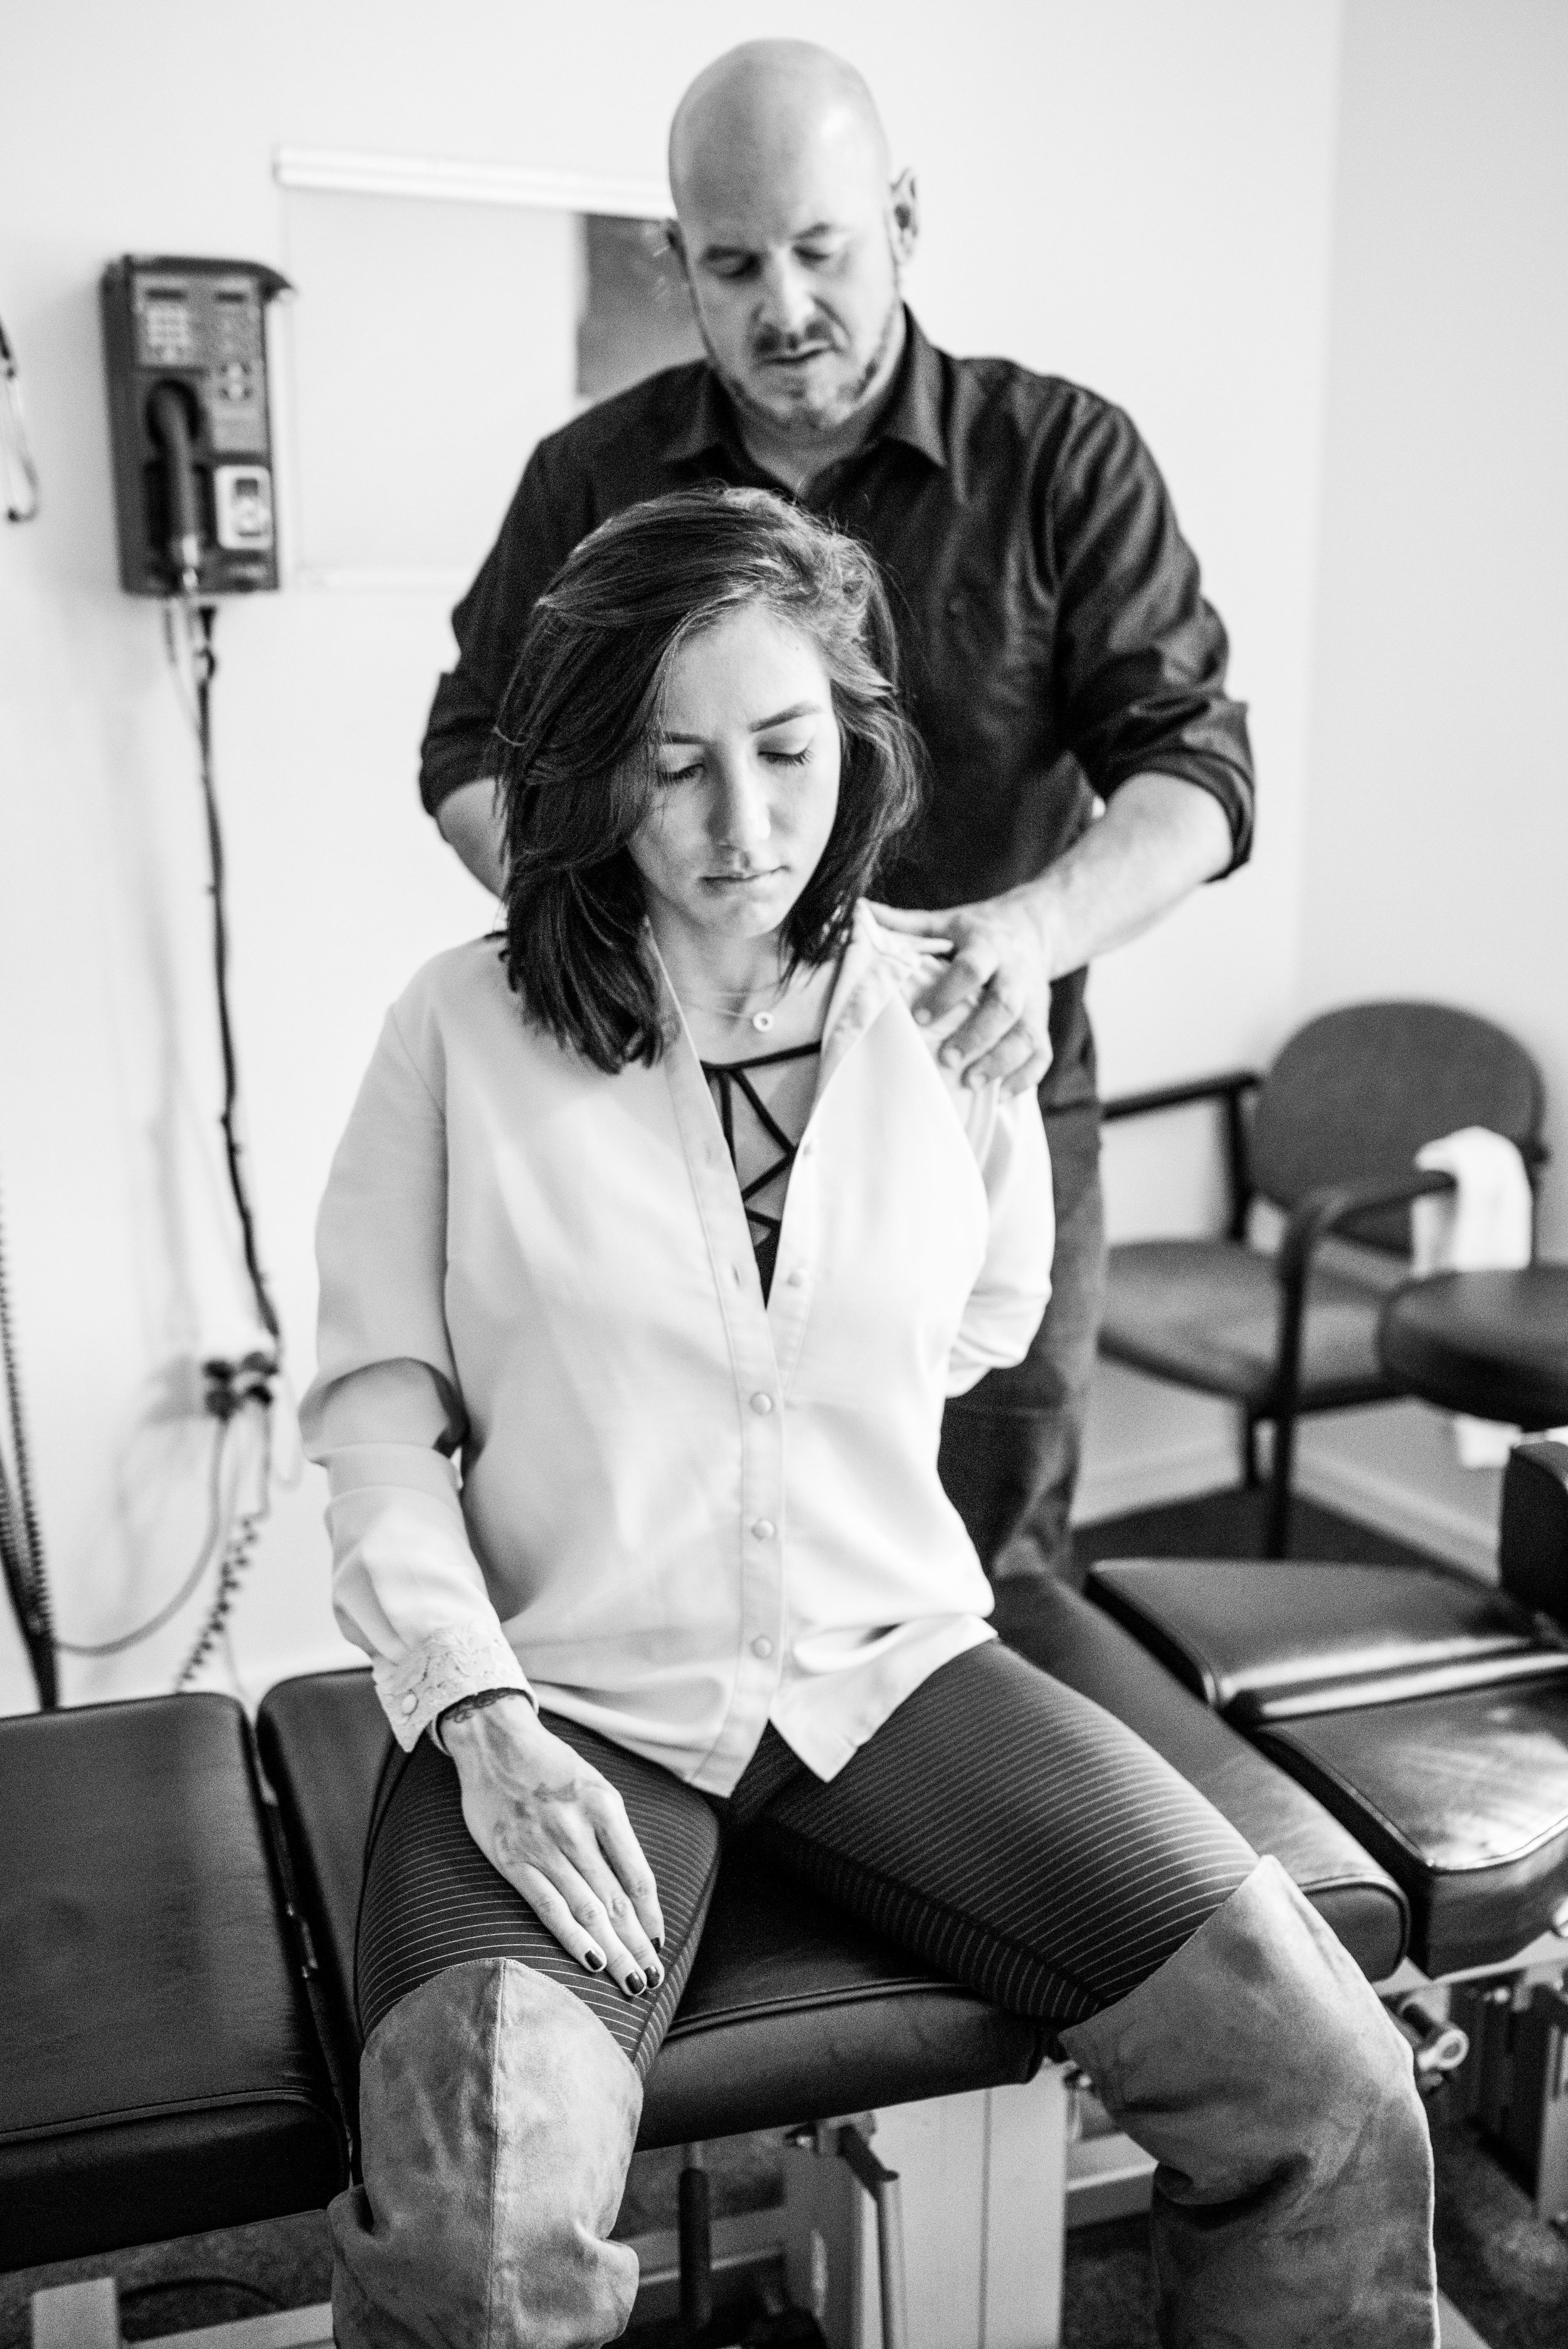 Jacqueline at a physical therapy session with Dr. David Sales.